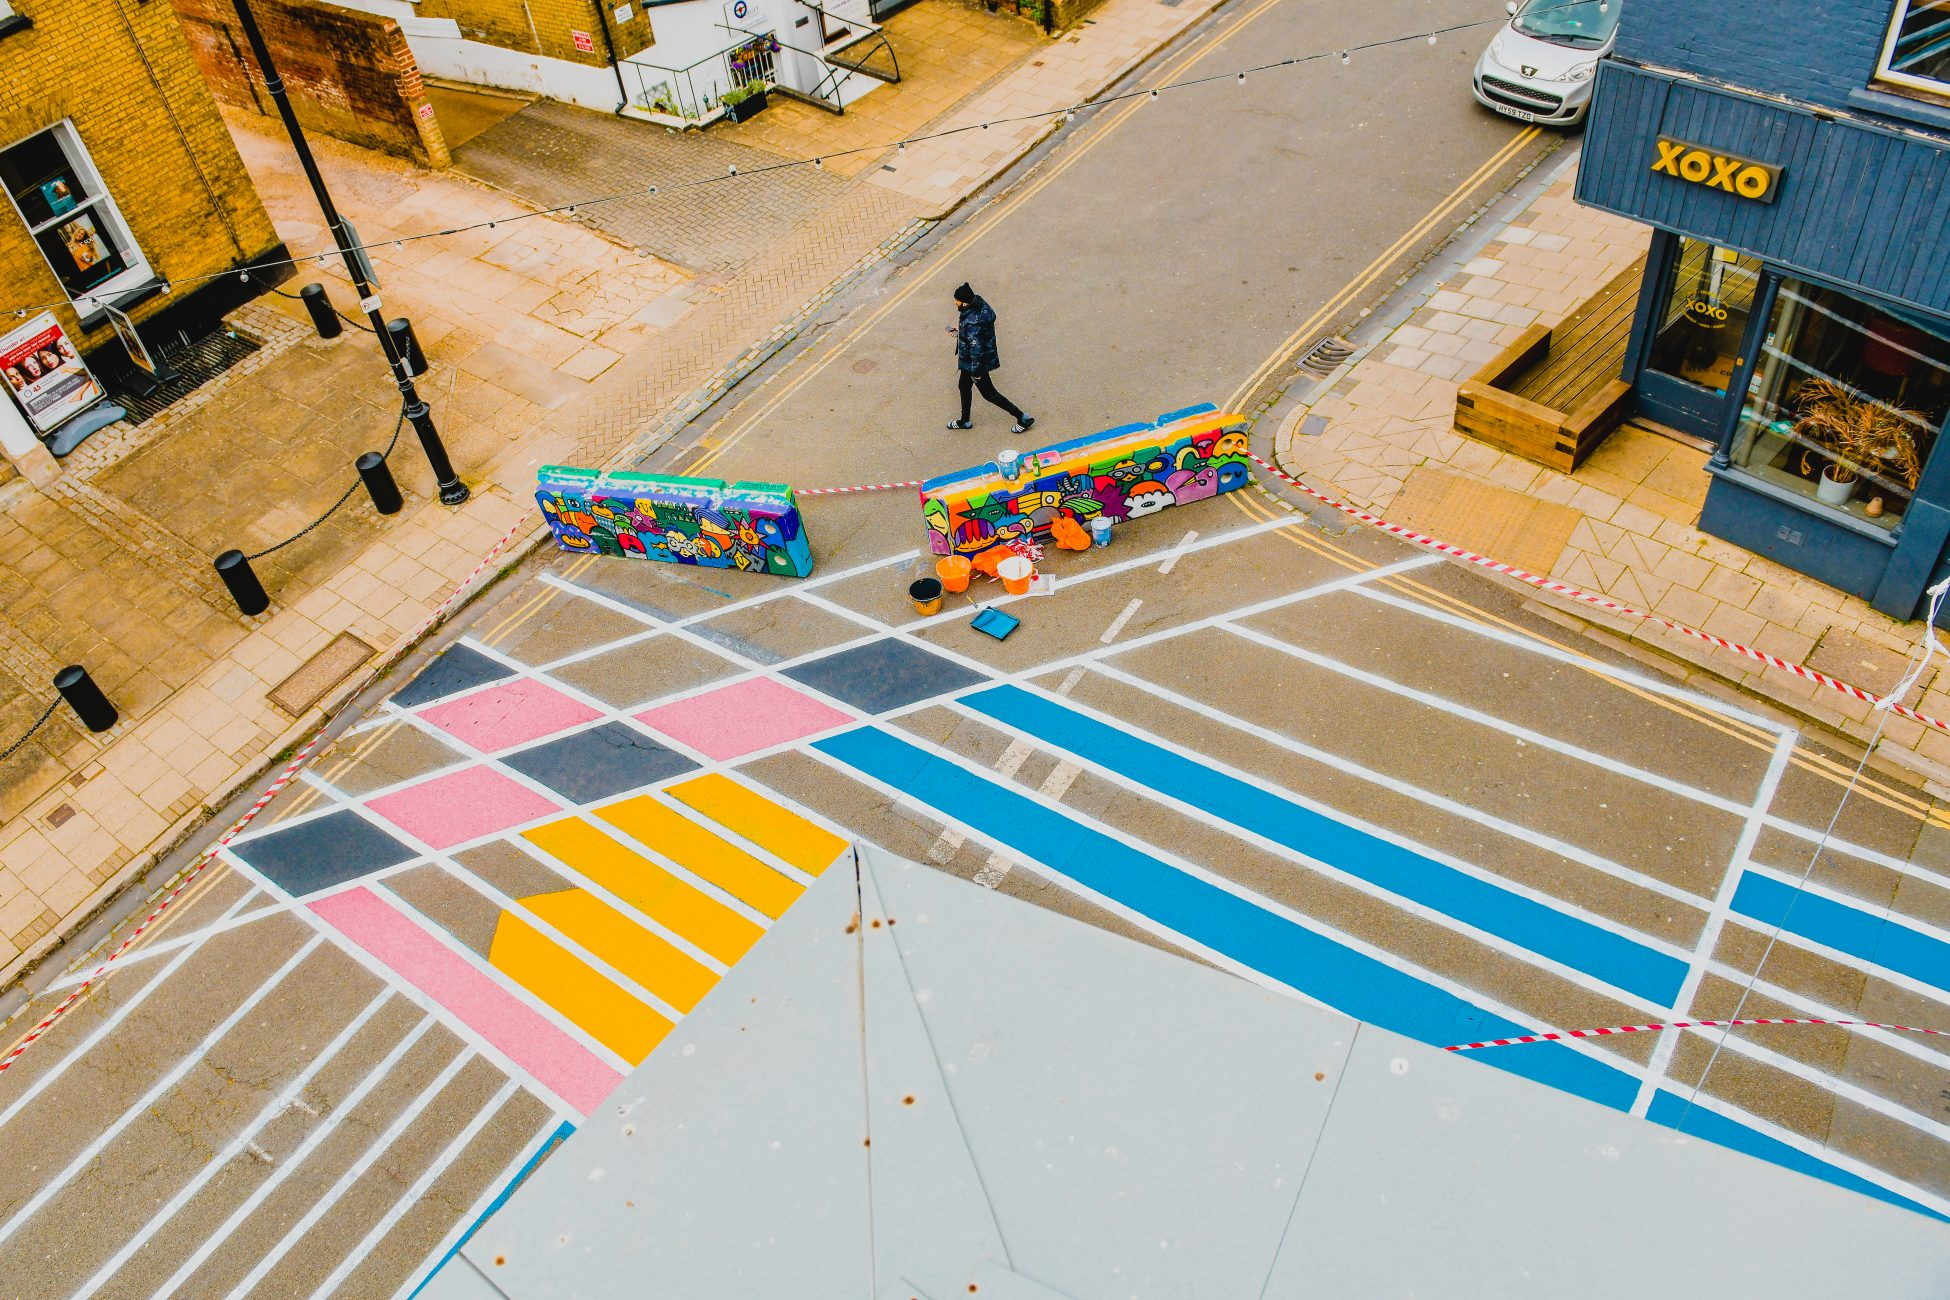 Photo looking down at a junction where two roads intersect. Large colourful boxes/crates have been placed across the junction blocking off two of the roads leading to the intersection. The blocked off roads have been painted with thick white lines running lengthways down the street, with a few more intersecting those lines. Some of the diamonds and rectangles this has created have been painted yellow, blue, pink and navy.